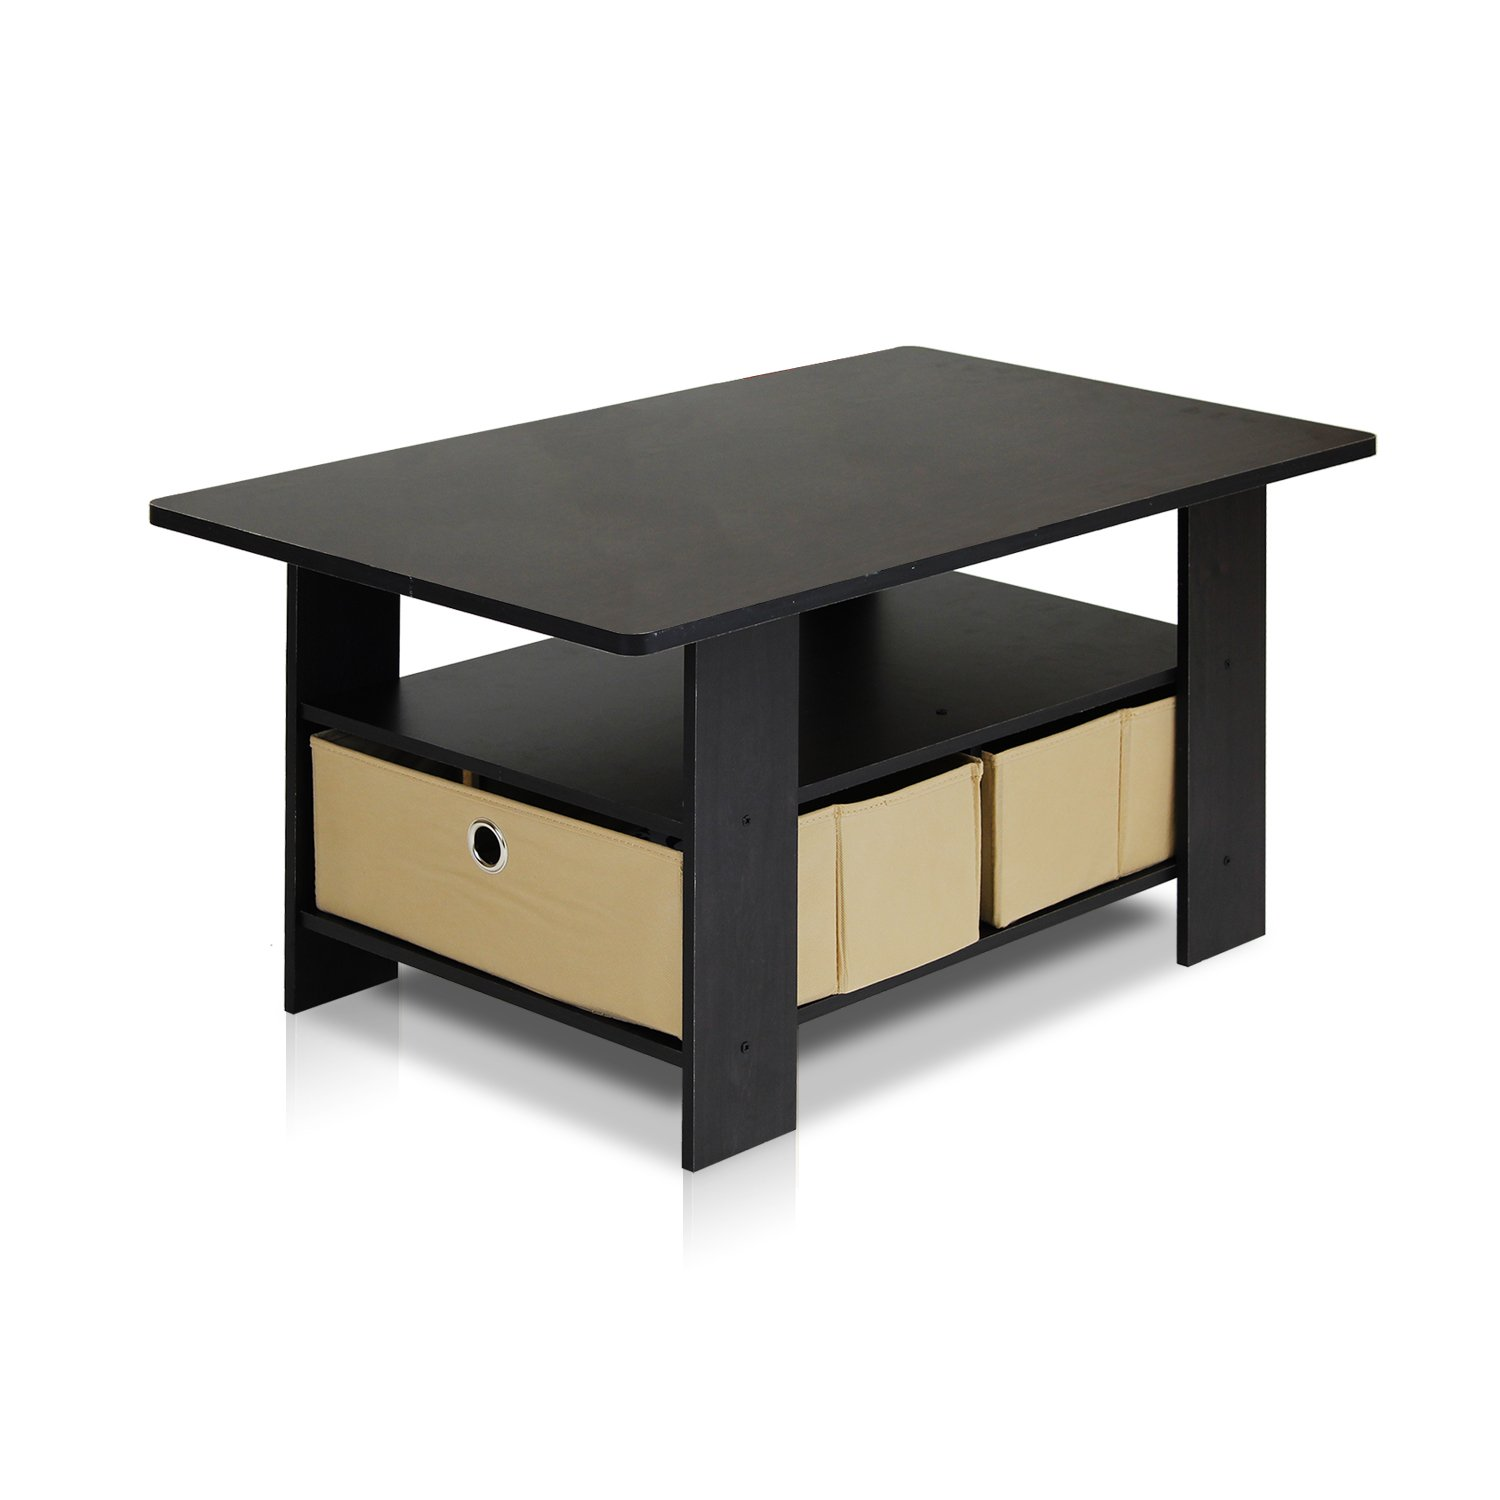 Small Coffee Table Living Room Furniture Dorm Desk Home Storage Shelf Organizer Ebay